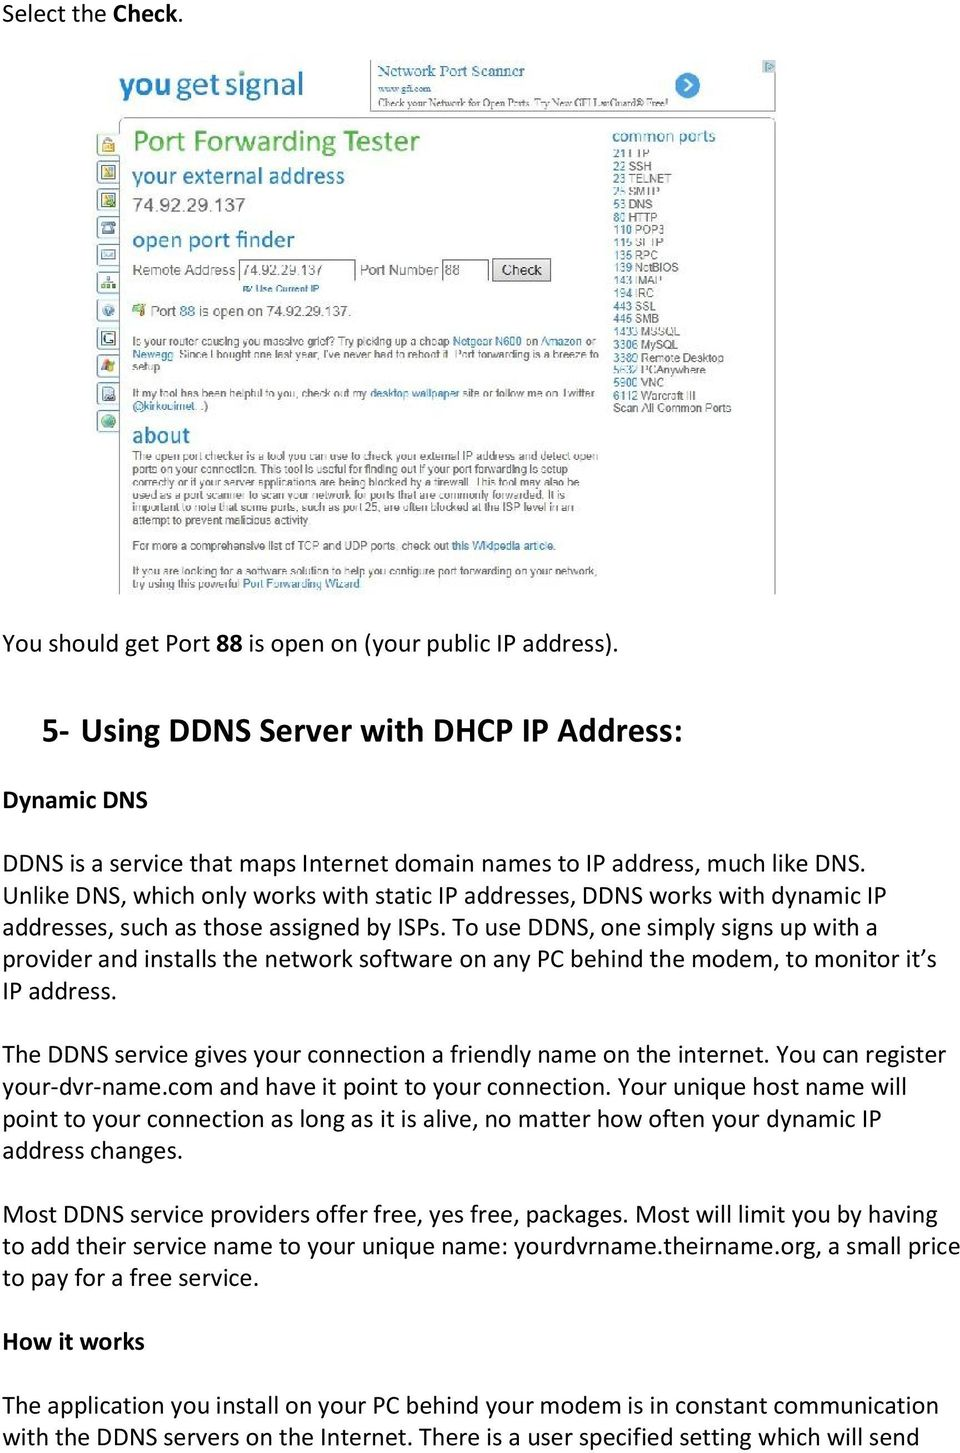 Unlike DNS, which only works with static IP addresses, DDNS works with dynamic IP addresses, such as those assigned by ISPs.